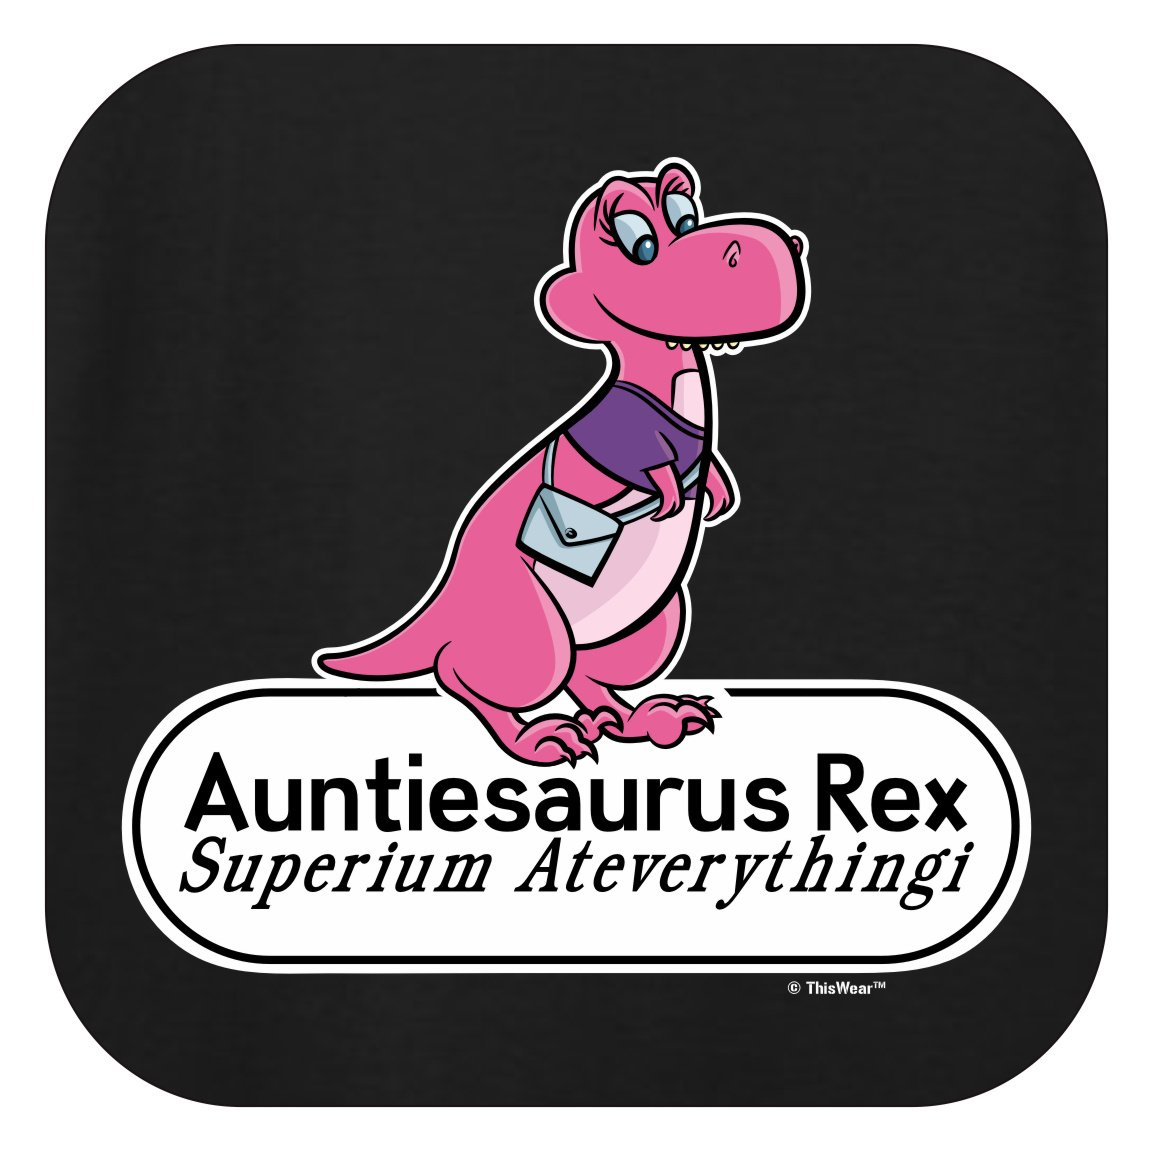 Amazon.com: ThisWear Gifts for Aunt Auntiesaurus Rex.